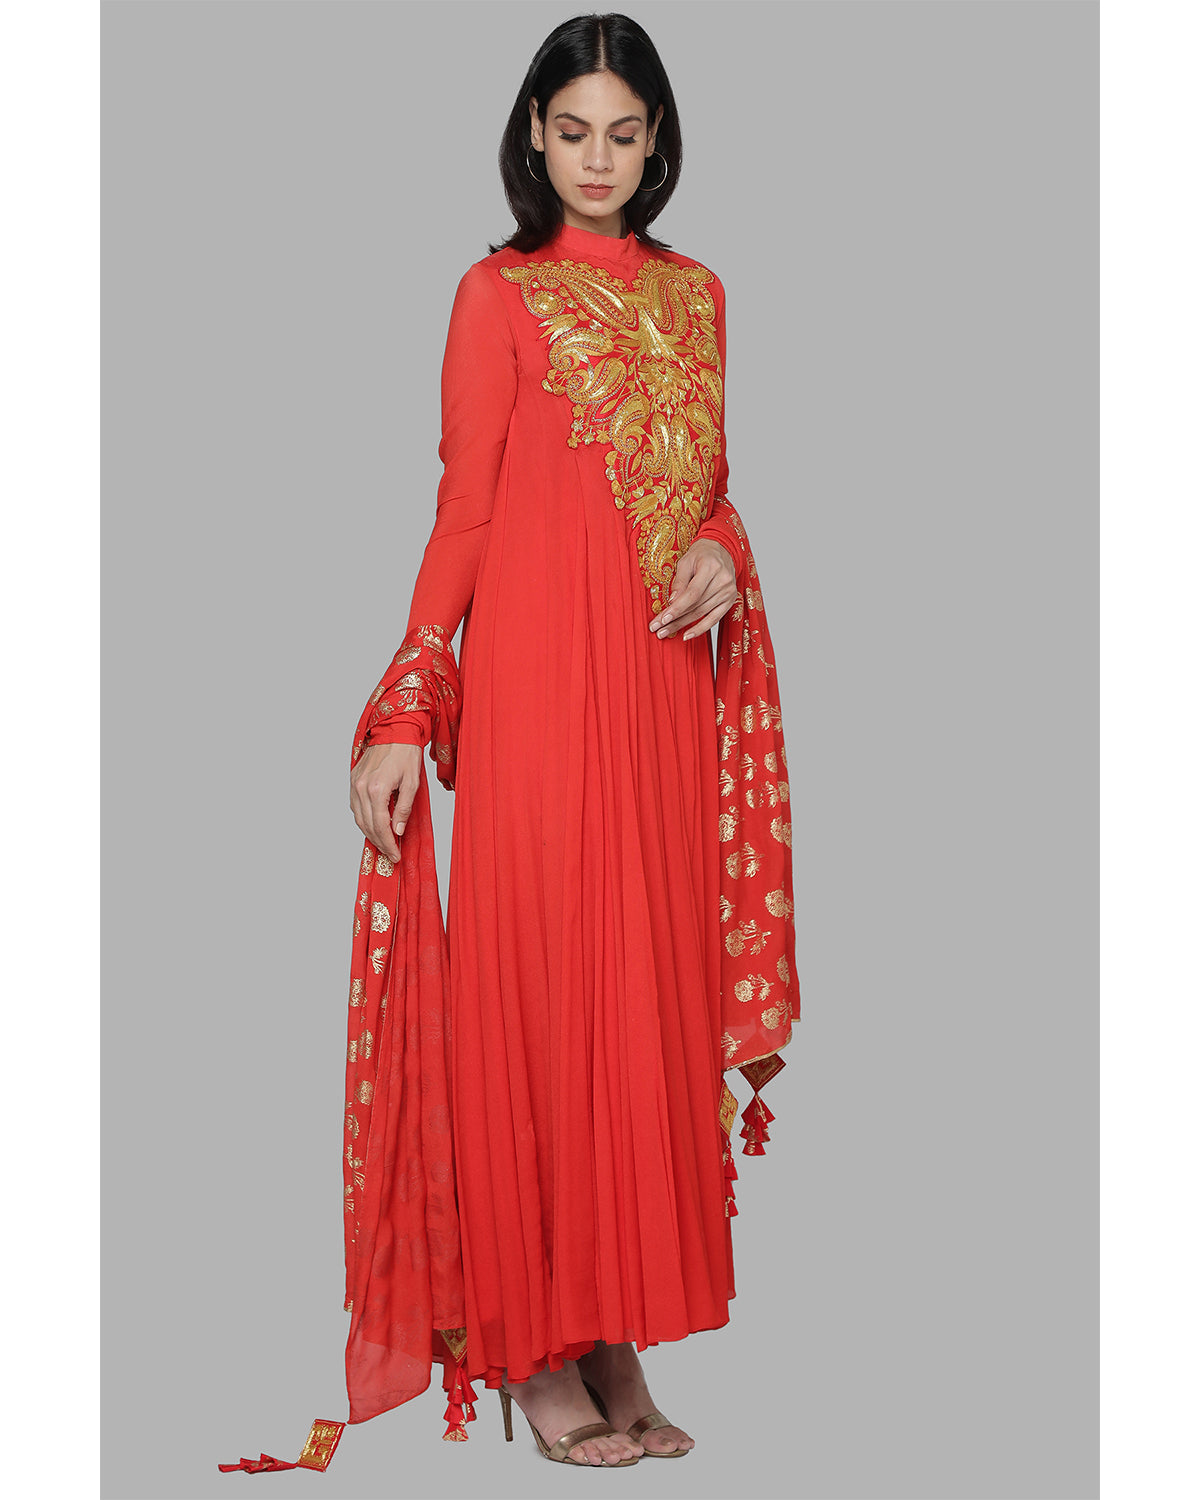 red and gold chiffon anarkali set